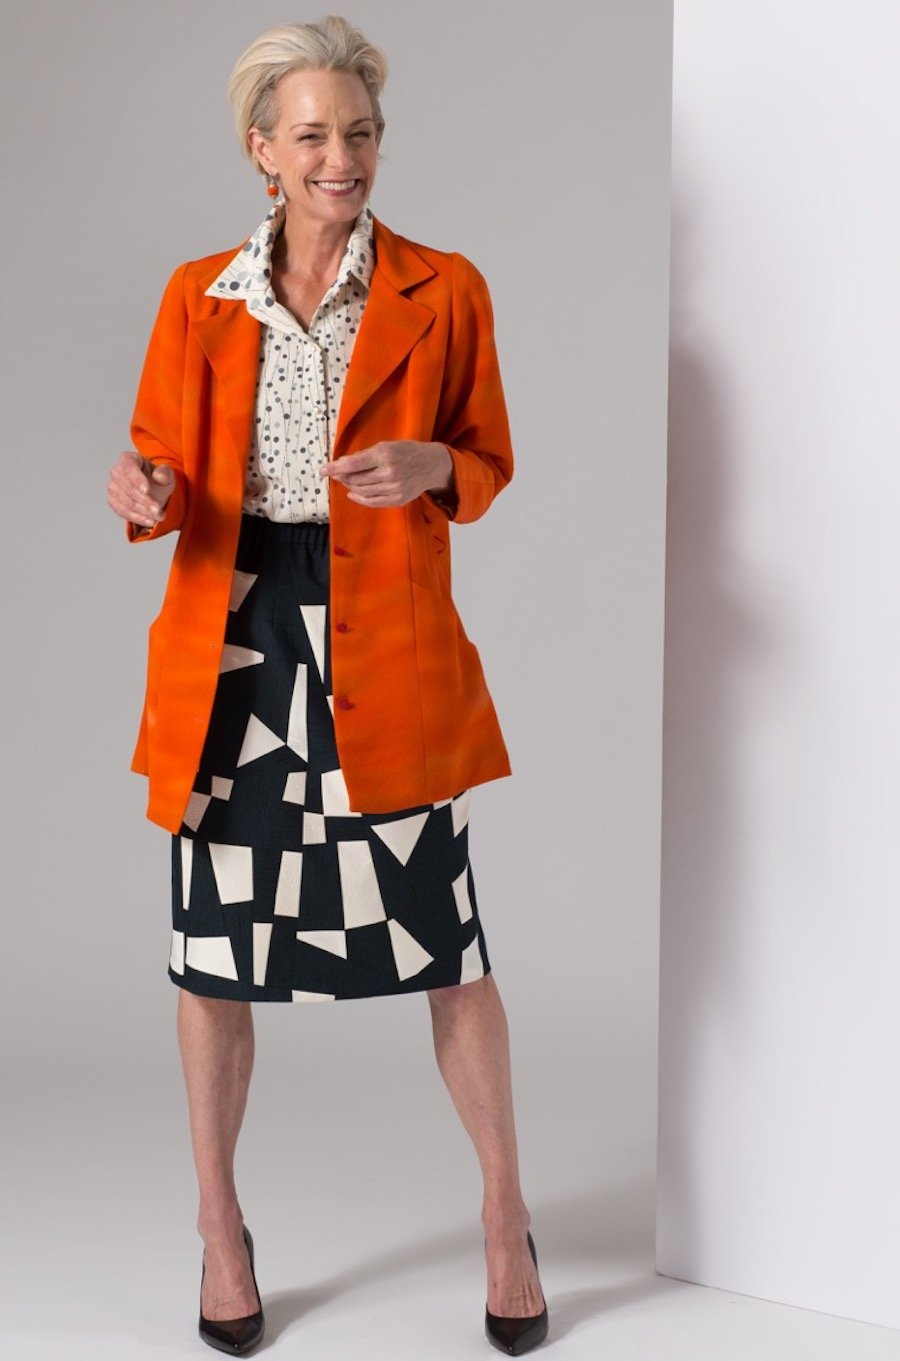 Pieced Skirt, Orange Trench and Short Sleeve Blouse — All Vintage Kimono Silk | Ann Williamson